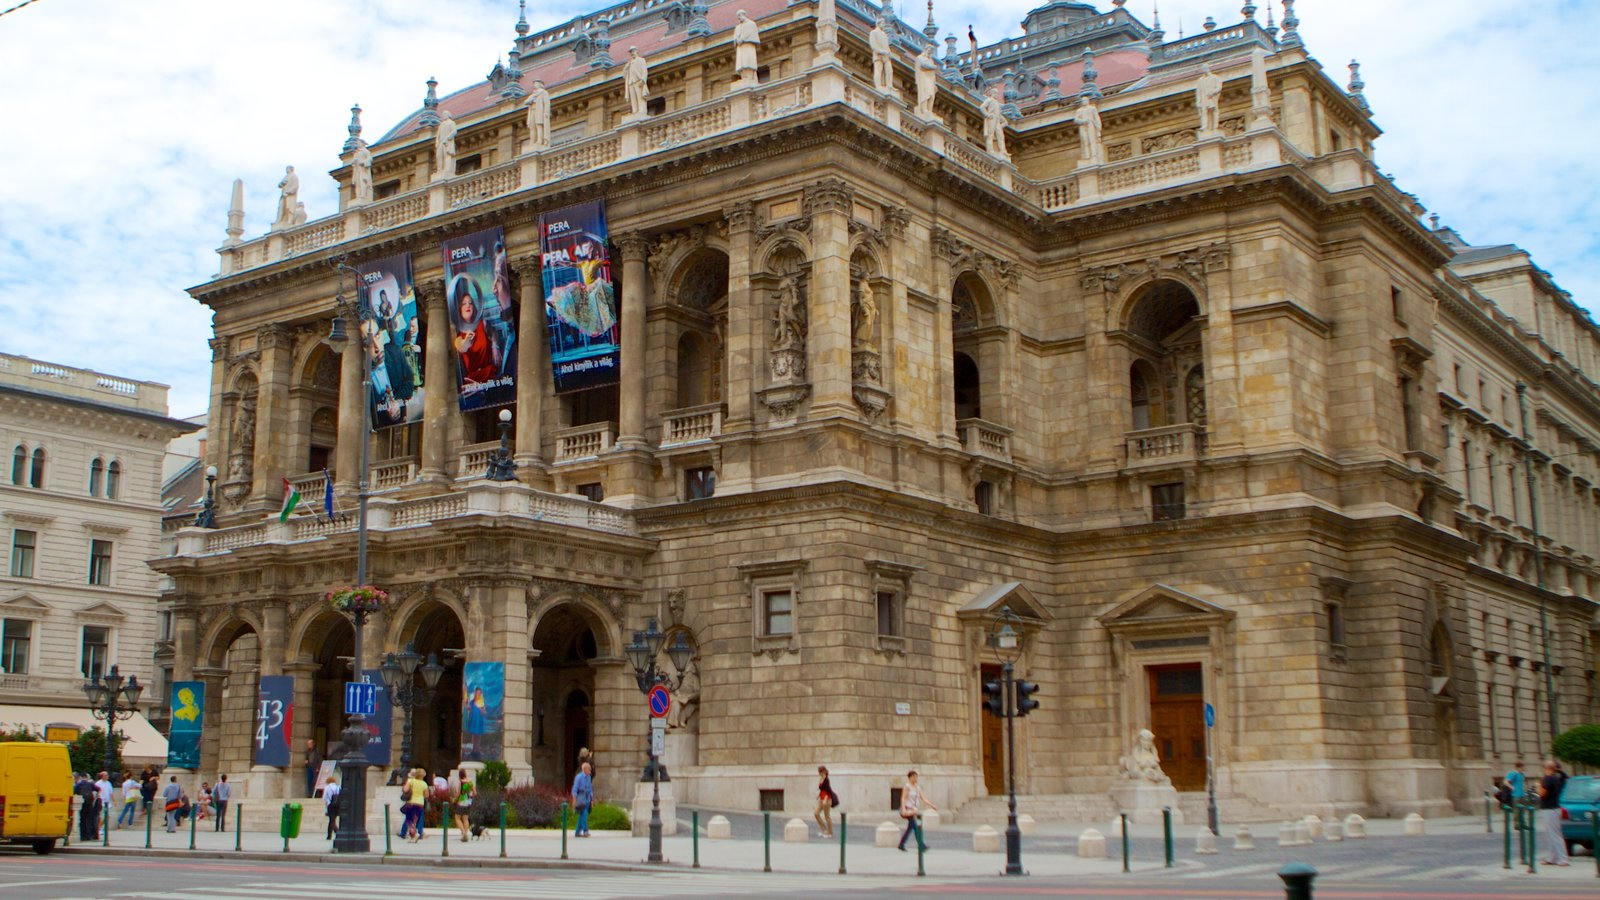 Hungarian State Opera House showing a city, theatre scenes and heritage architecture